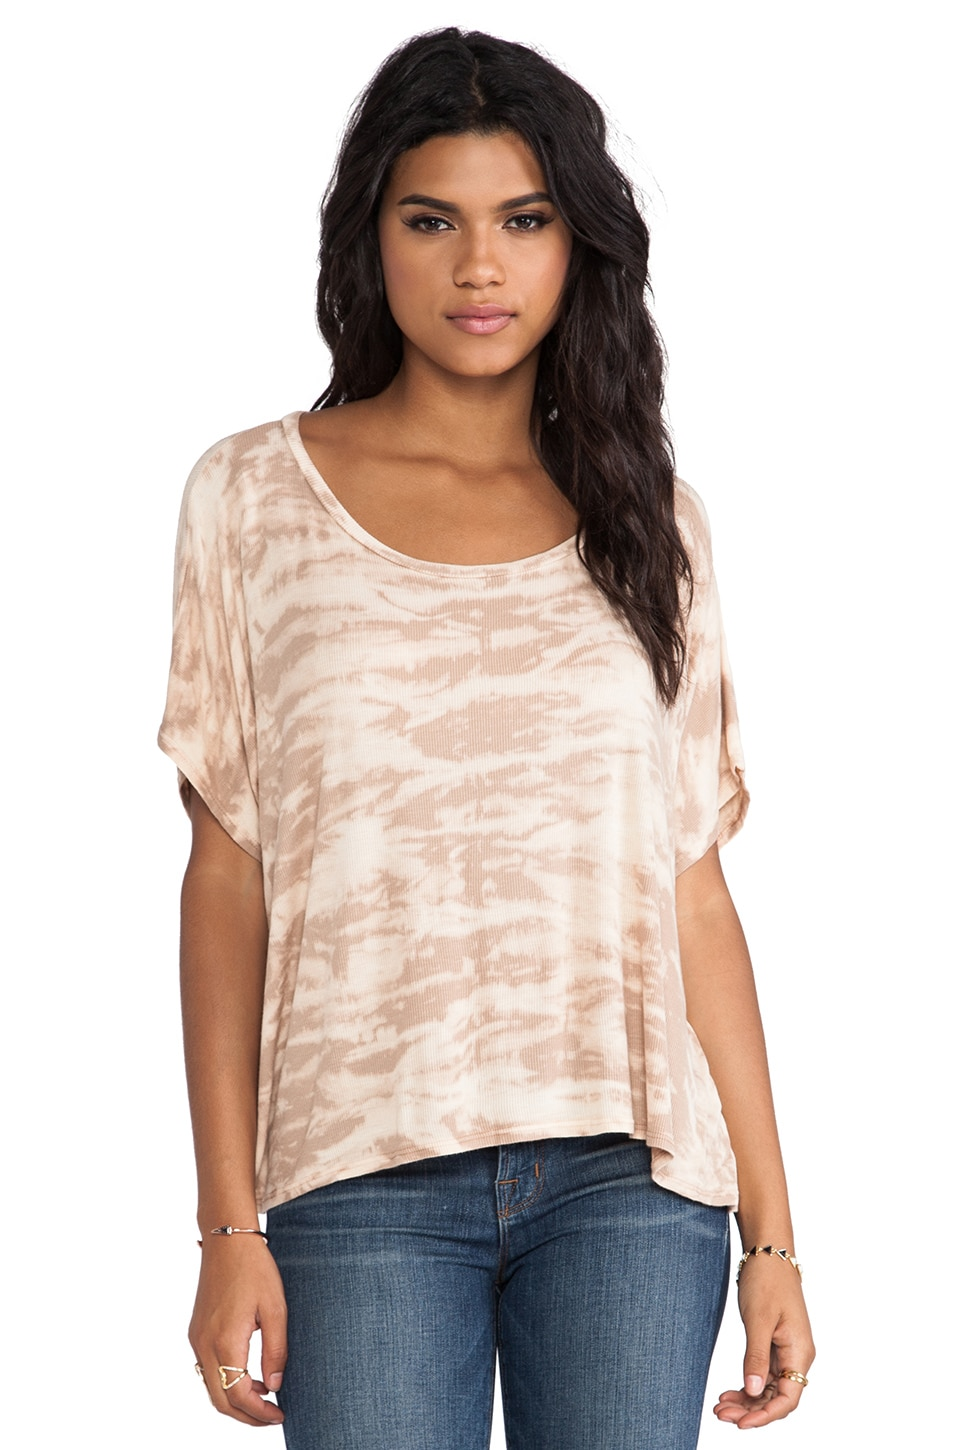 Rachel Pally Rib Darby Top in Bamboo Tie Dye